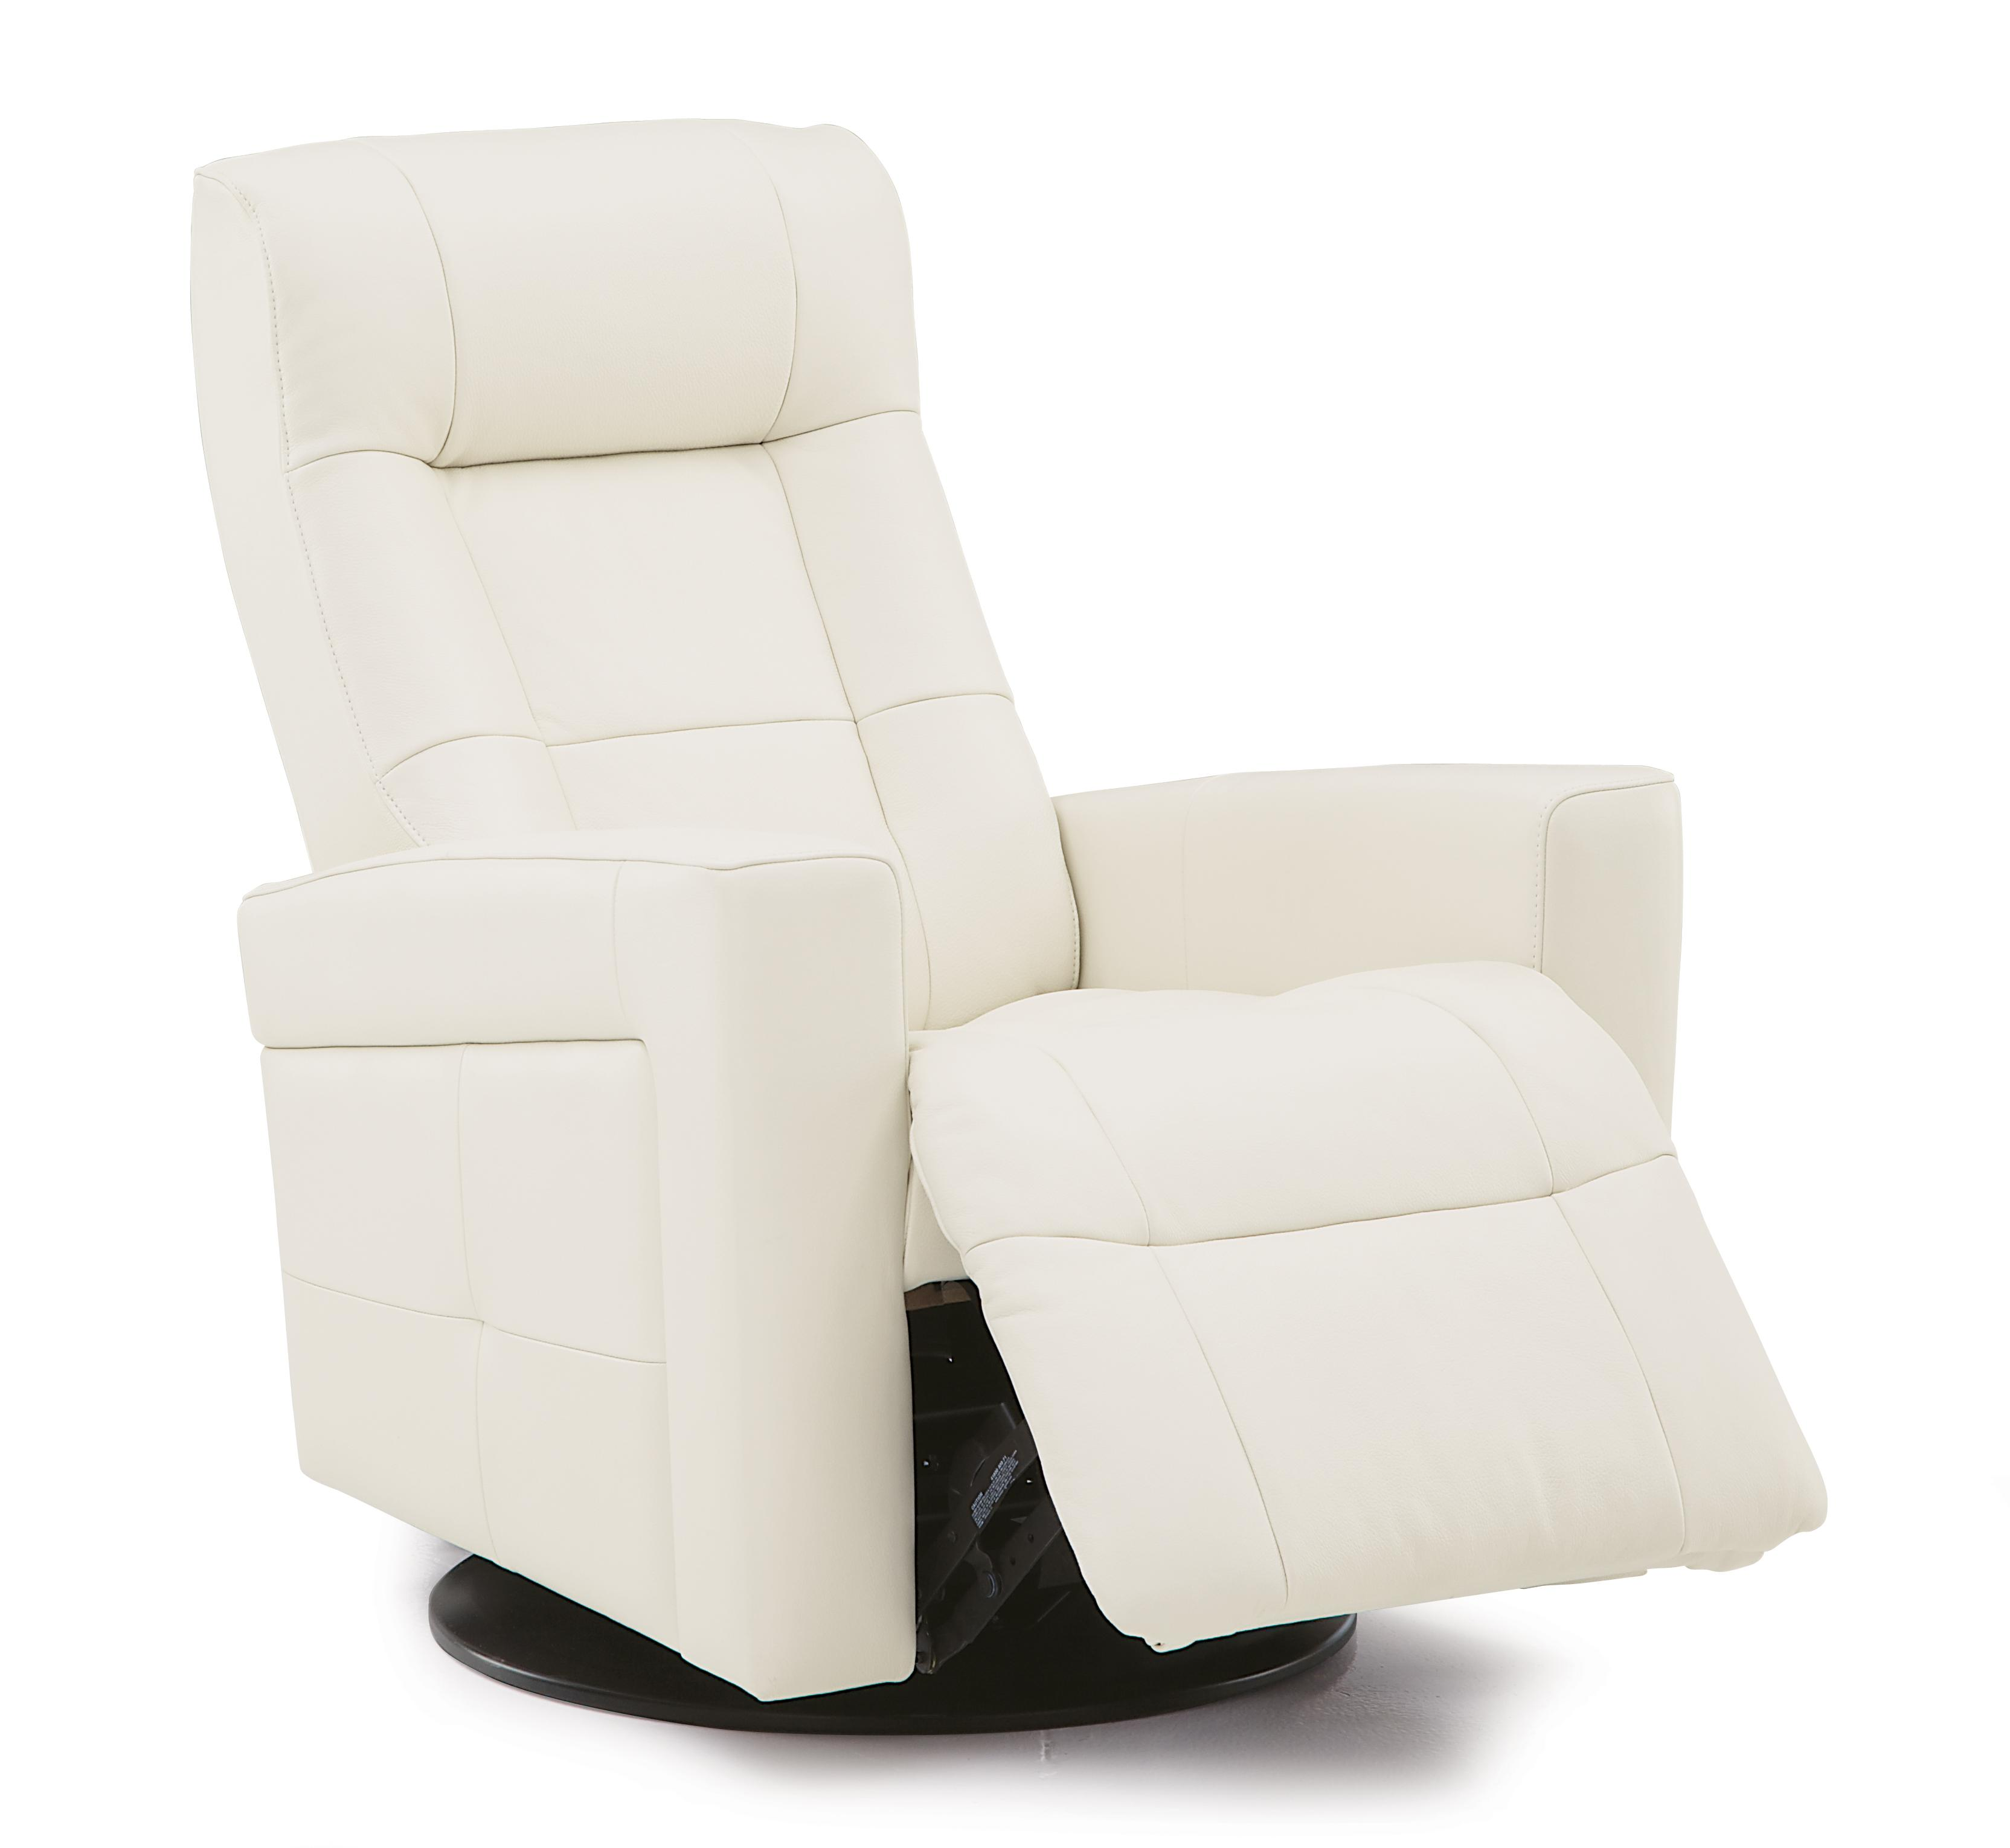 Recliner Shown May Not Represent Exact Features